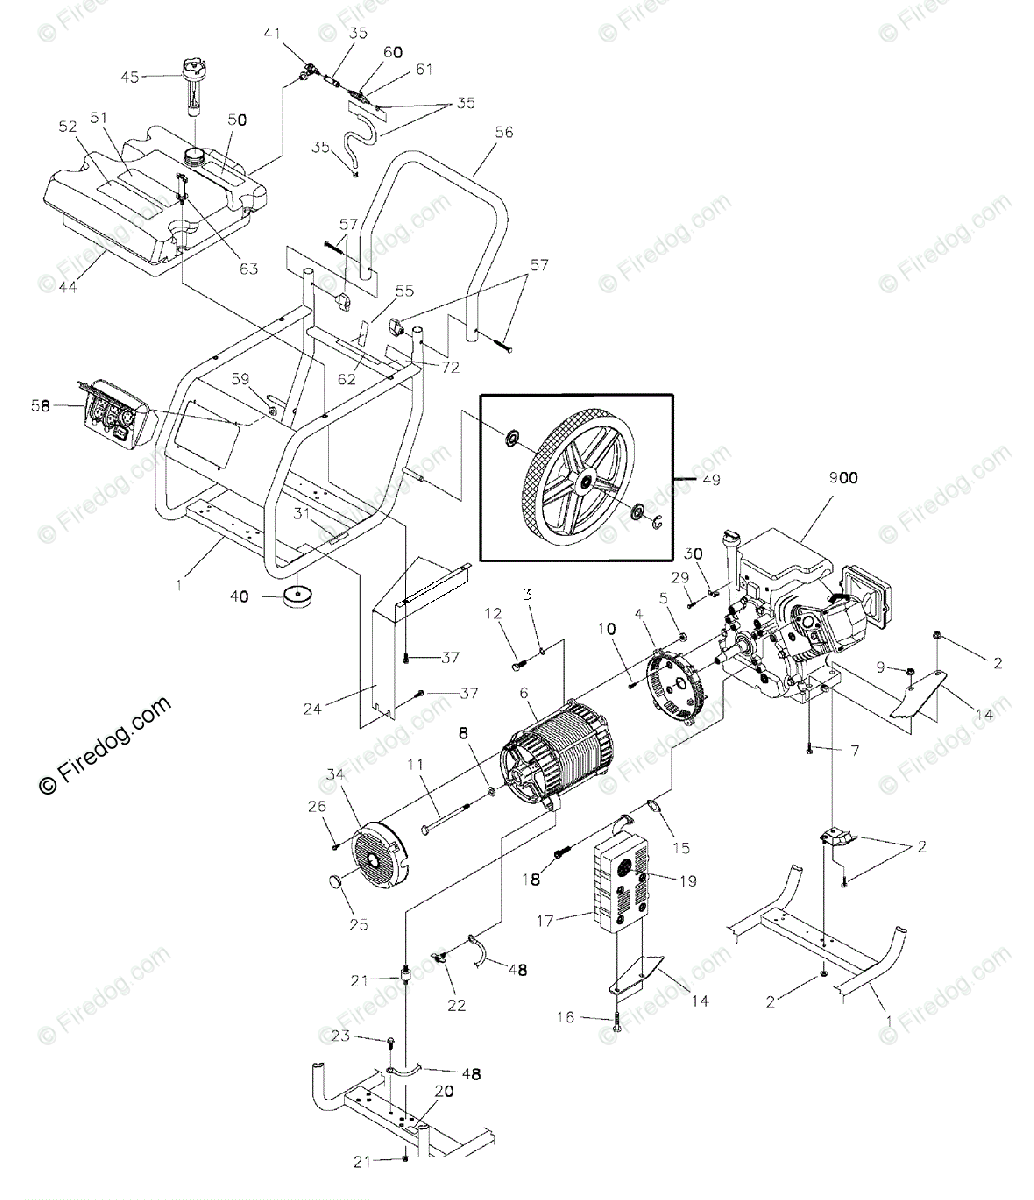 Wiring Diagram For Briggs And Stratton 219907 Electrical Wiring Briggs And  Stratton 8.75 190Cc 875 Series Briggs & Stratton Wiring Diagram